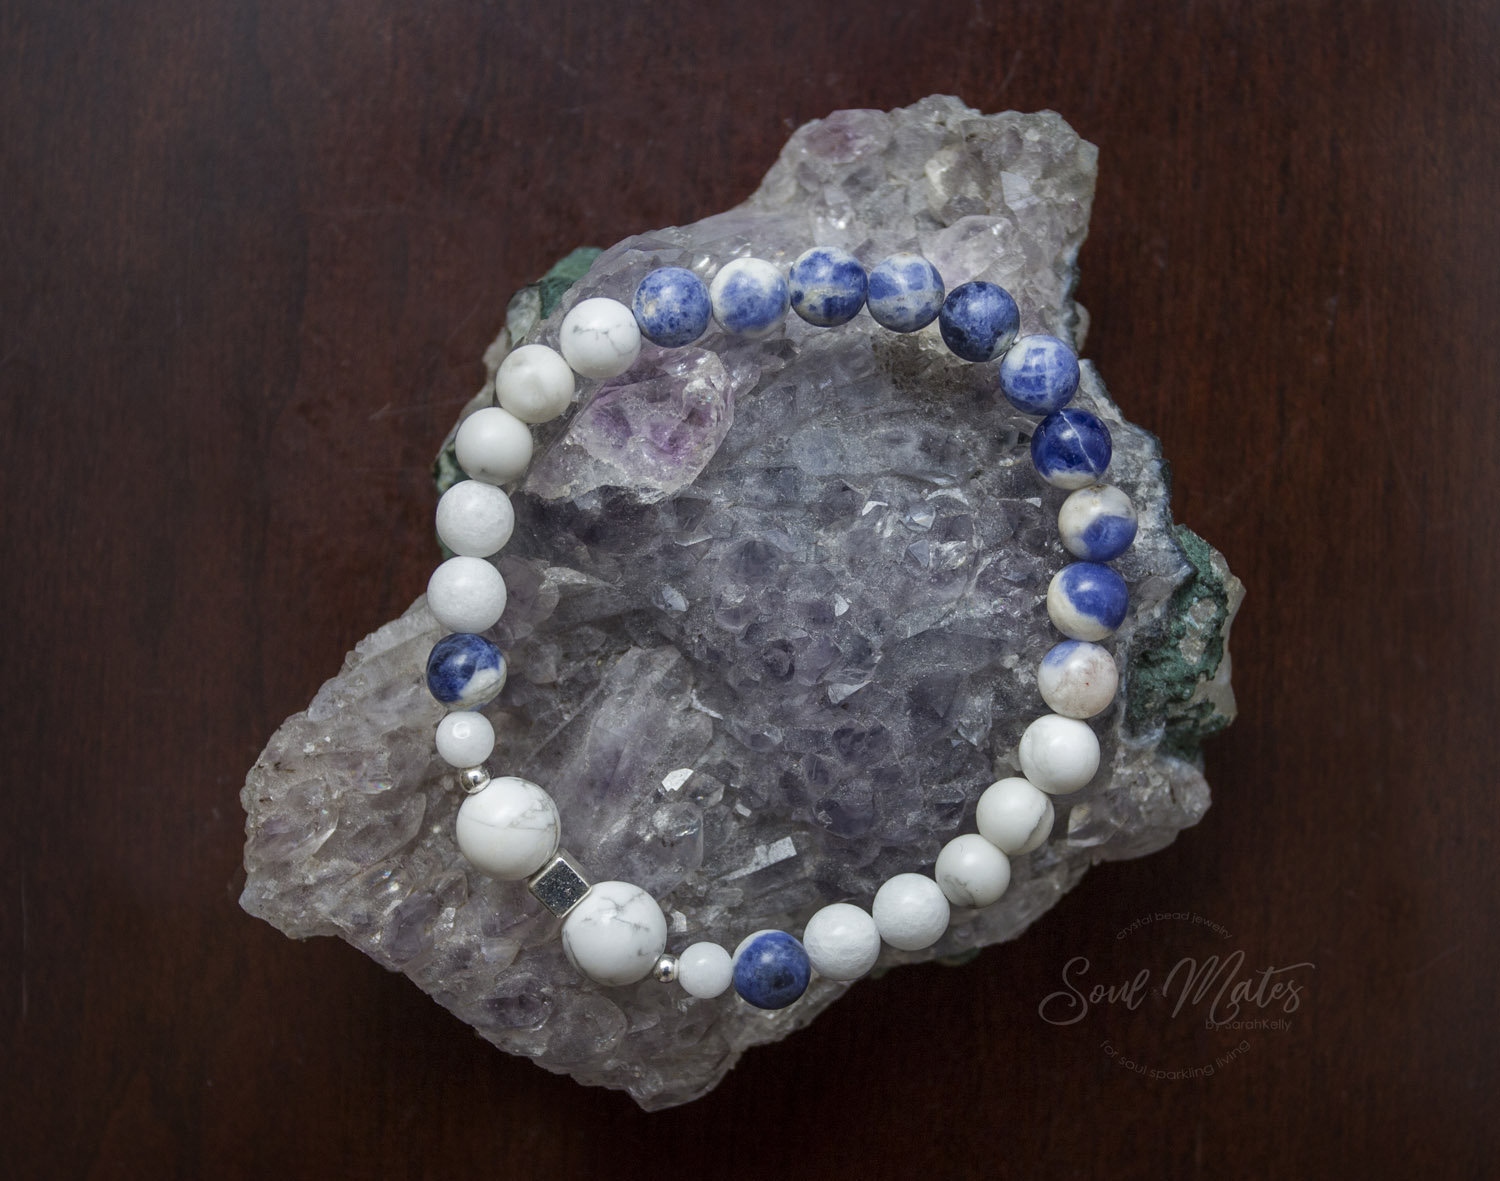 Calming  - Howlite, Sodalite and White Jade calm the mind and emotions while allowing clear thinking processes.  Great for day wear in the workplace and for a restful night's sleep.  $22